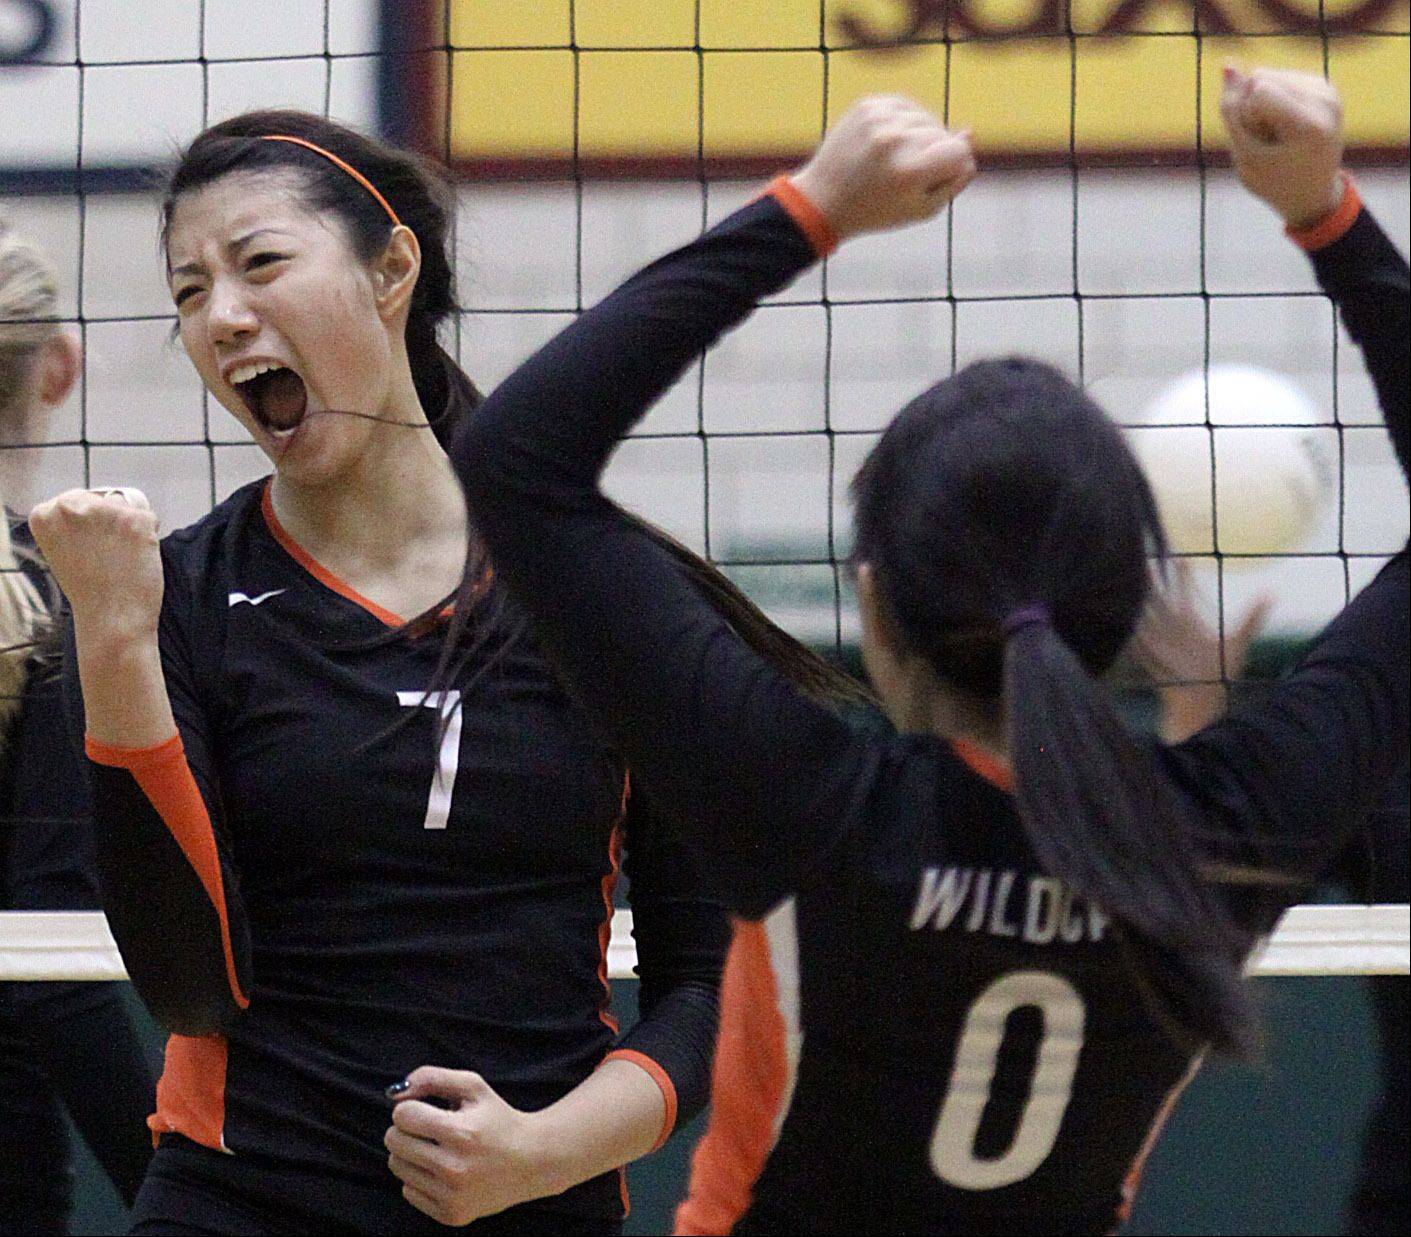 Libertyville's Cindy Zhou, left, screams with delight as she celebrates with teammate Vicky Liu during Thursday's sectional title volleyball game win over Palatine.